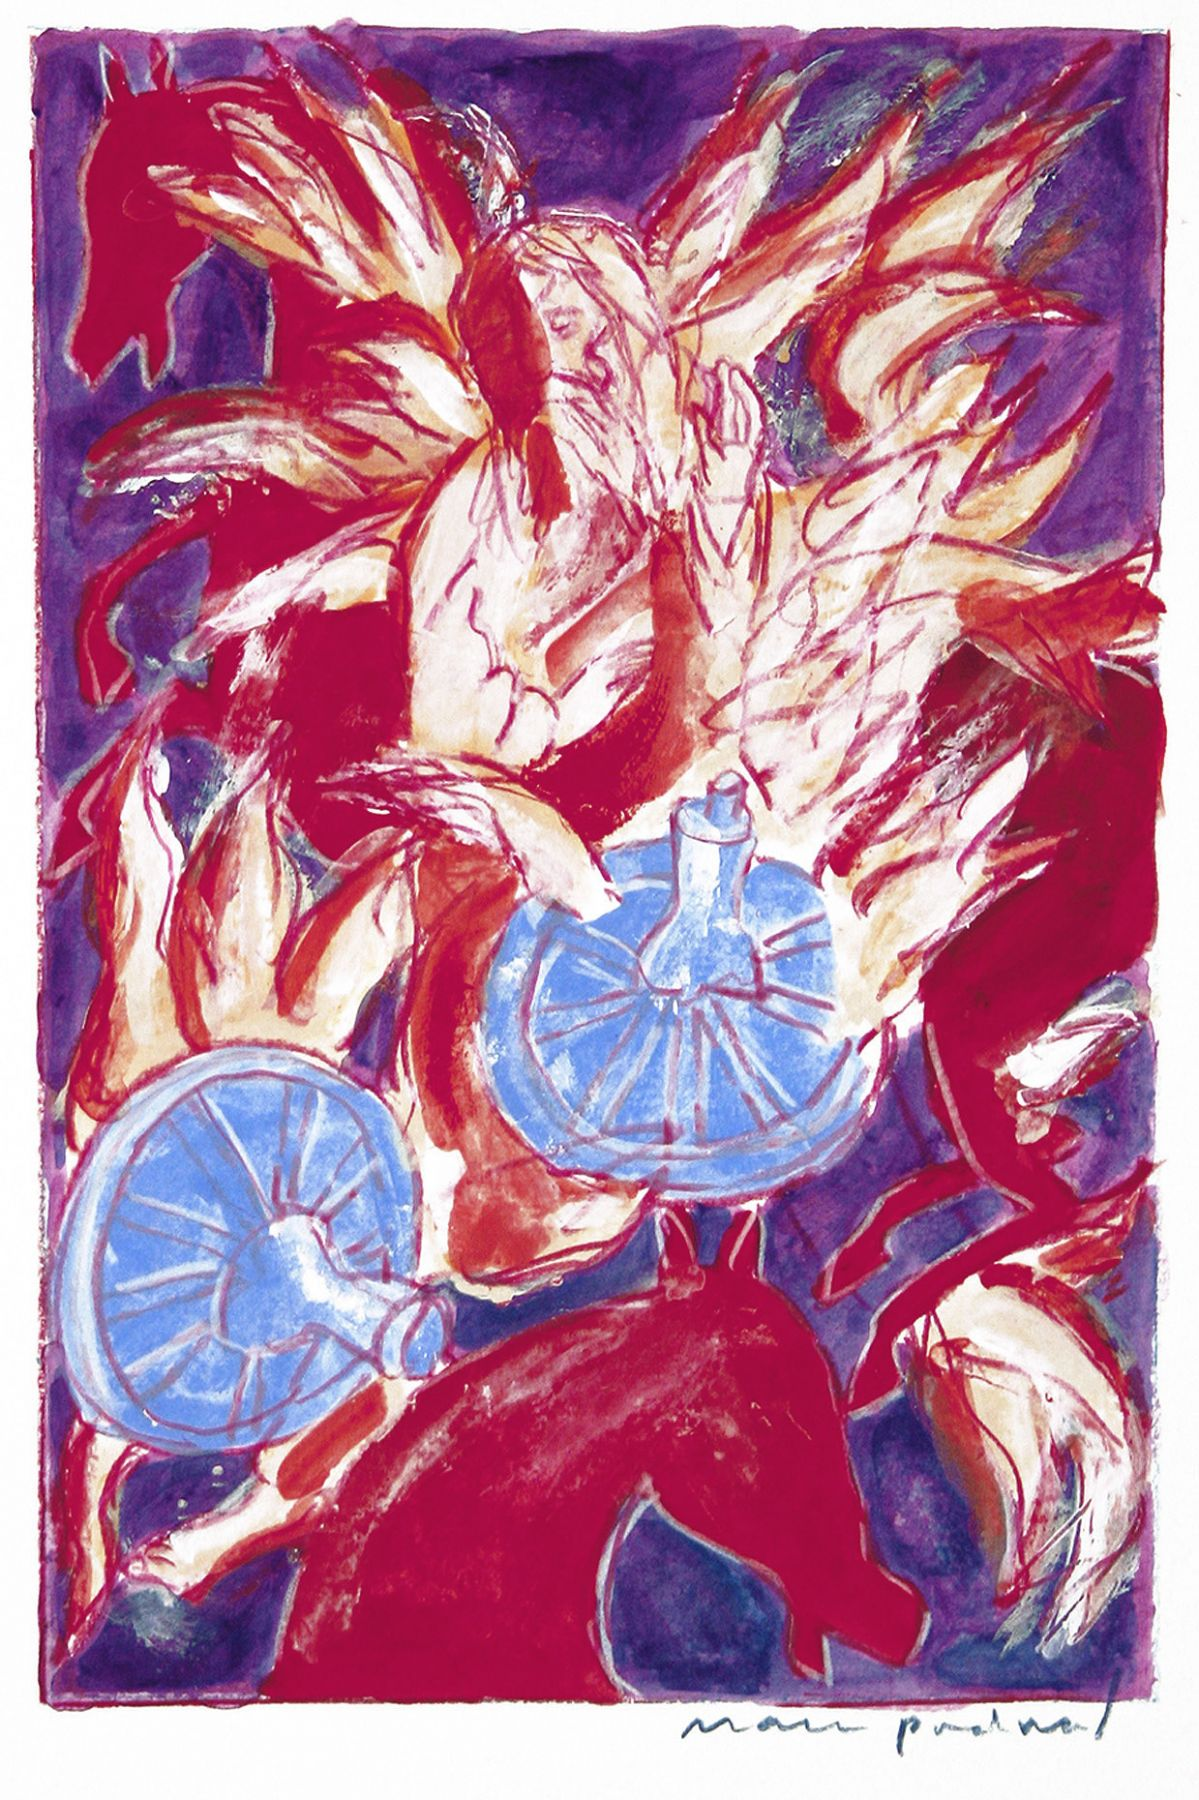 Mark Podwal, Elijah's Transformation into the Angel Metatron (SOLD), 2008, acrylic, gouache & colored pencil on paper, 10 x 6 1/2 inches